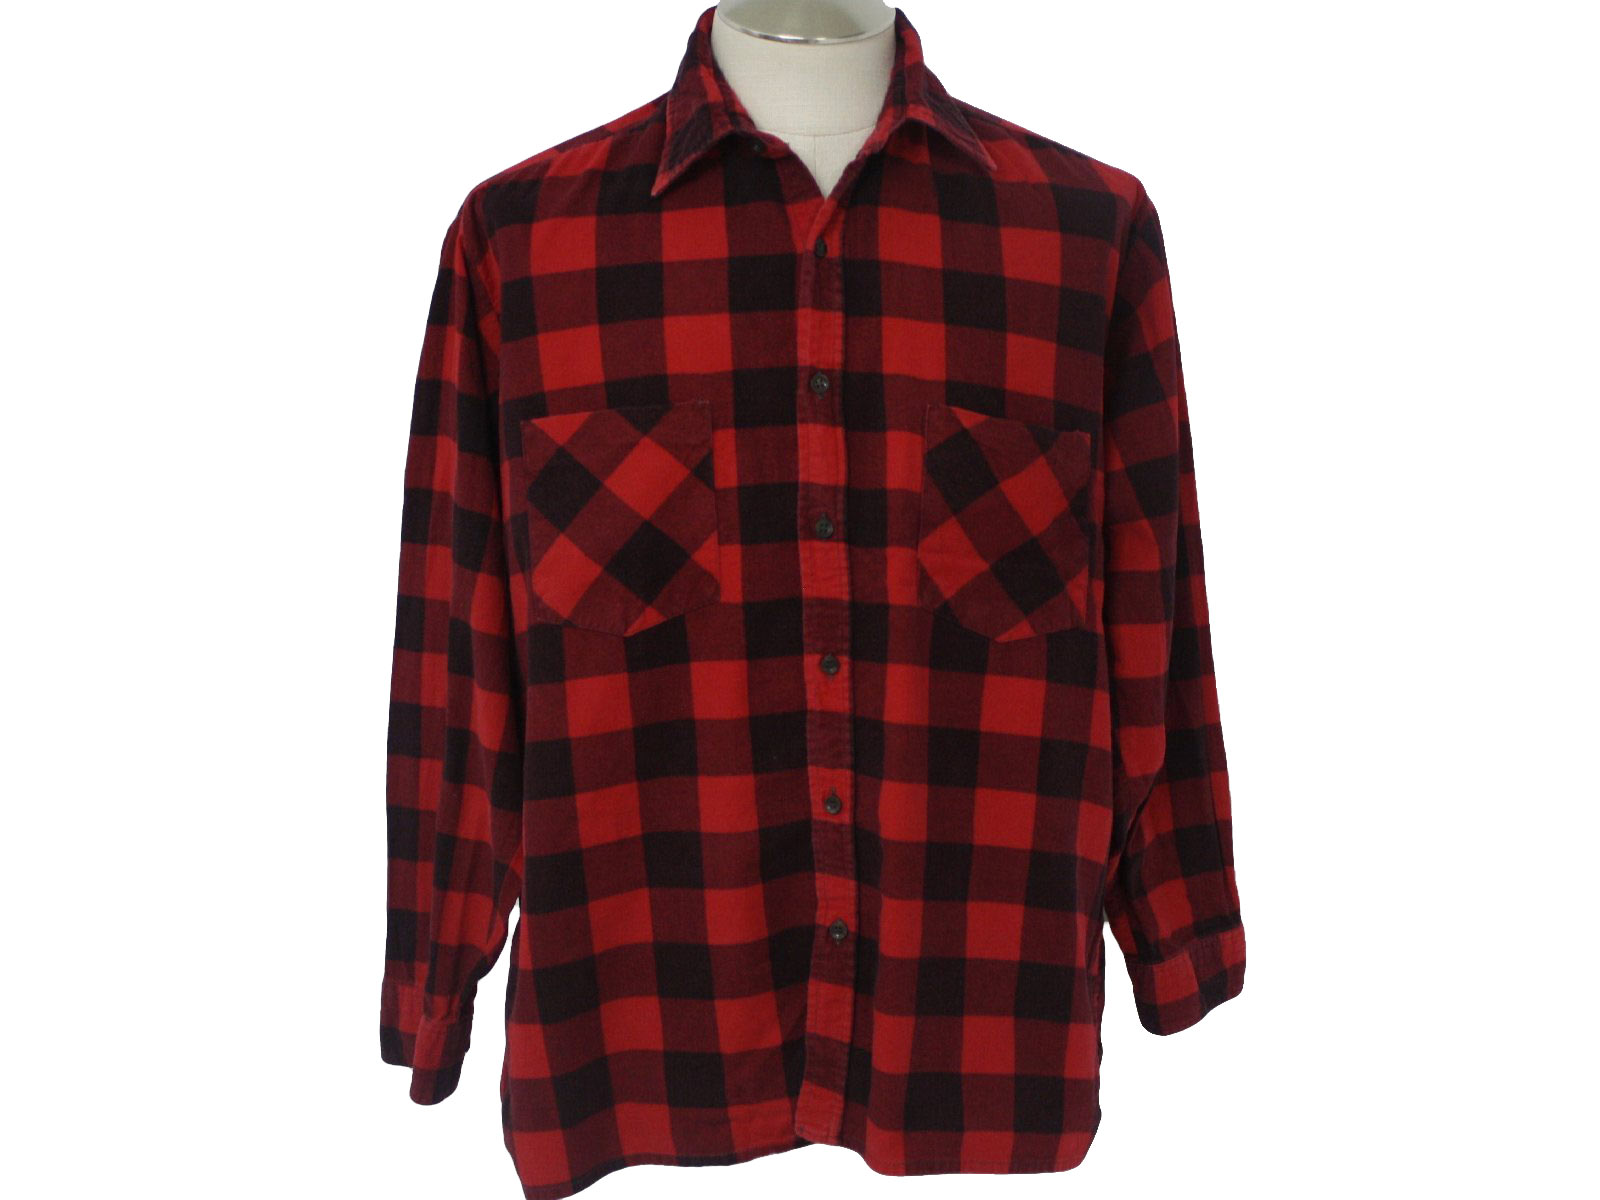 80s Retro Shirt: 80s -Open Trails- Mens red and black cotton flannel shirt with folding collar, button front, and two open patch chest pockets.